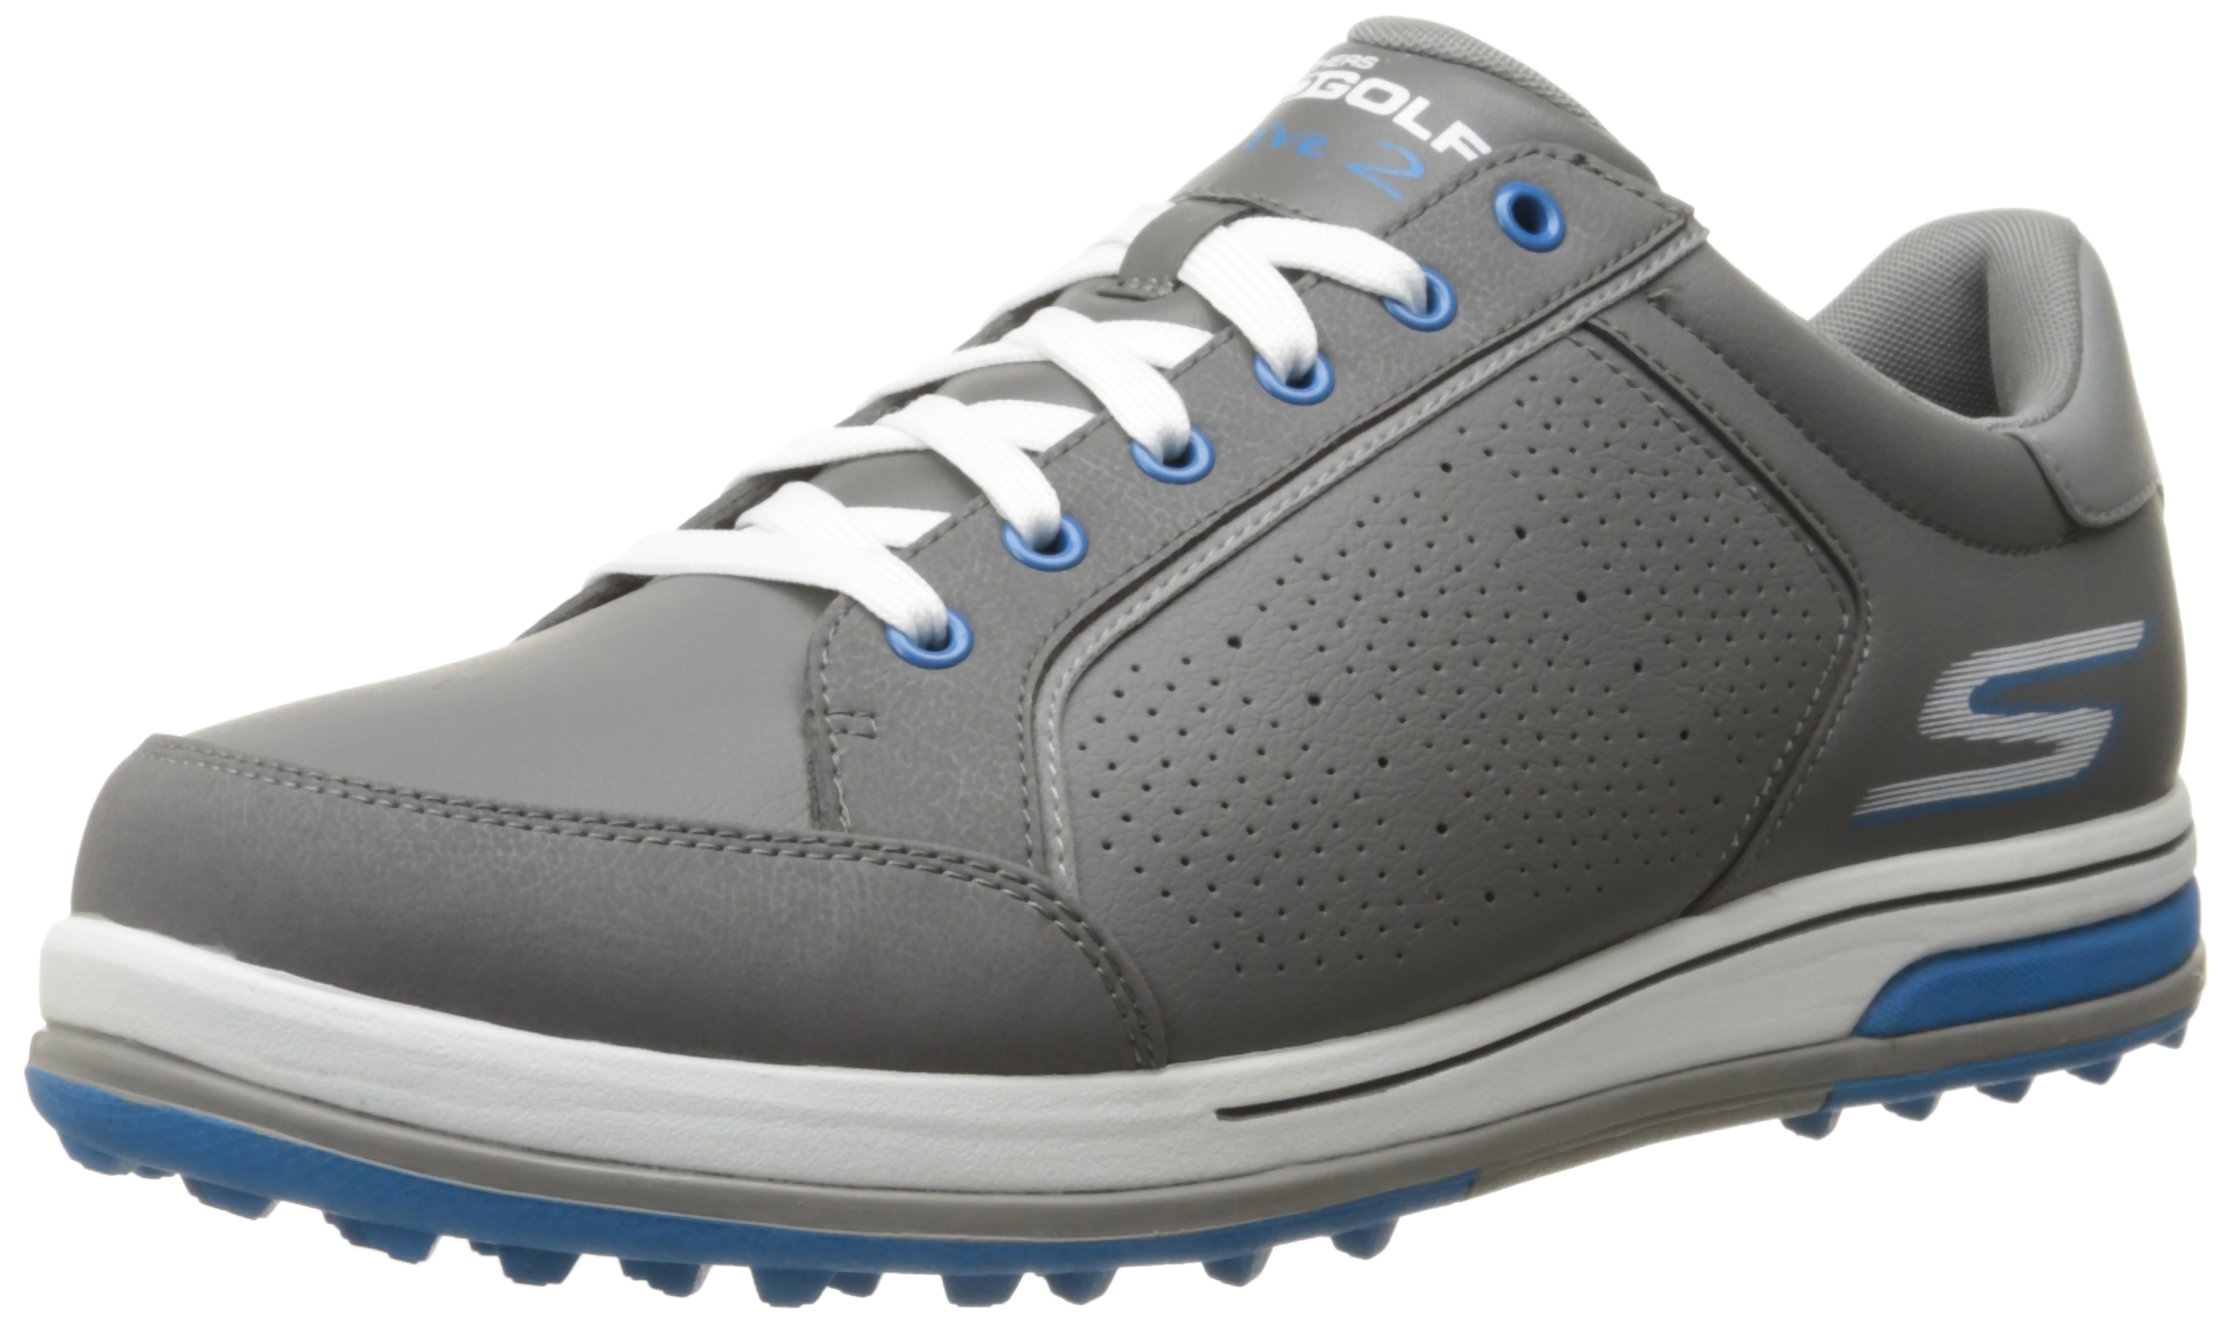 5839018f881 Best Rated in Men s Golf Shoes   Helpful Customer Reviews - Amazon.com